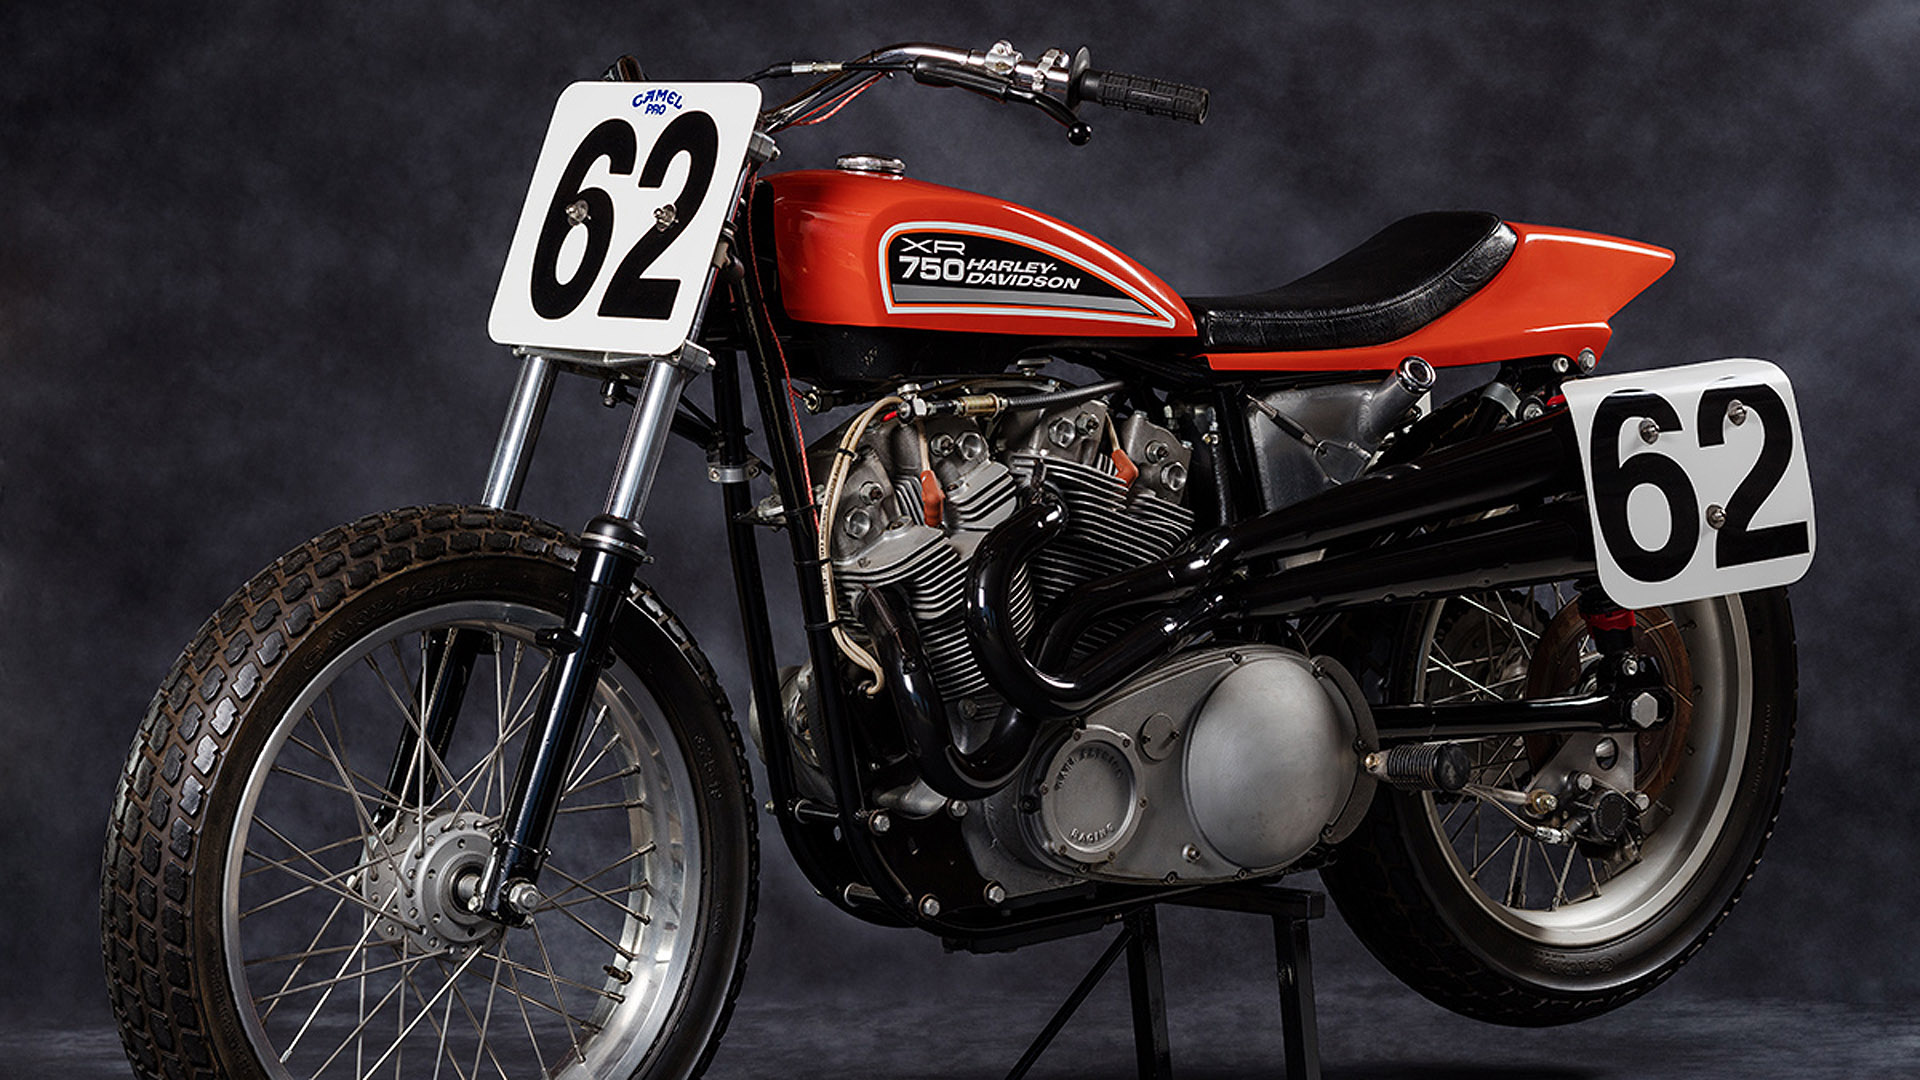 The Day Mcn Rode An Evel Knievel Harley Davidson Xr750 Replica: Harley Davidson Xr750